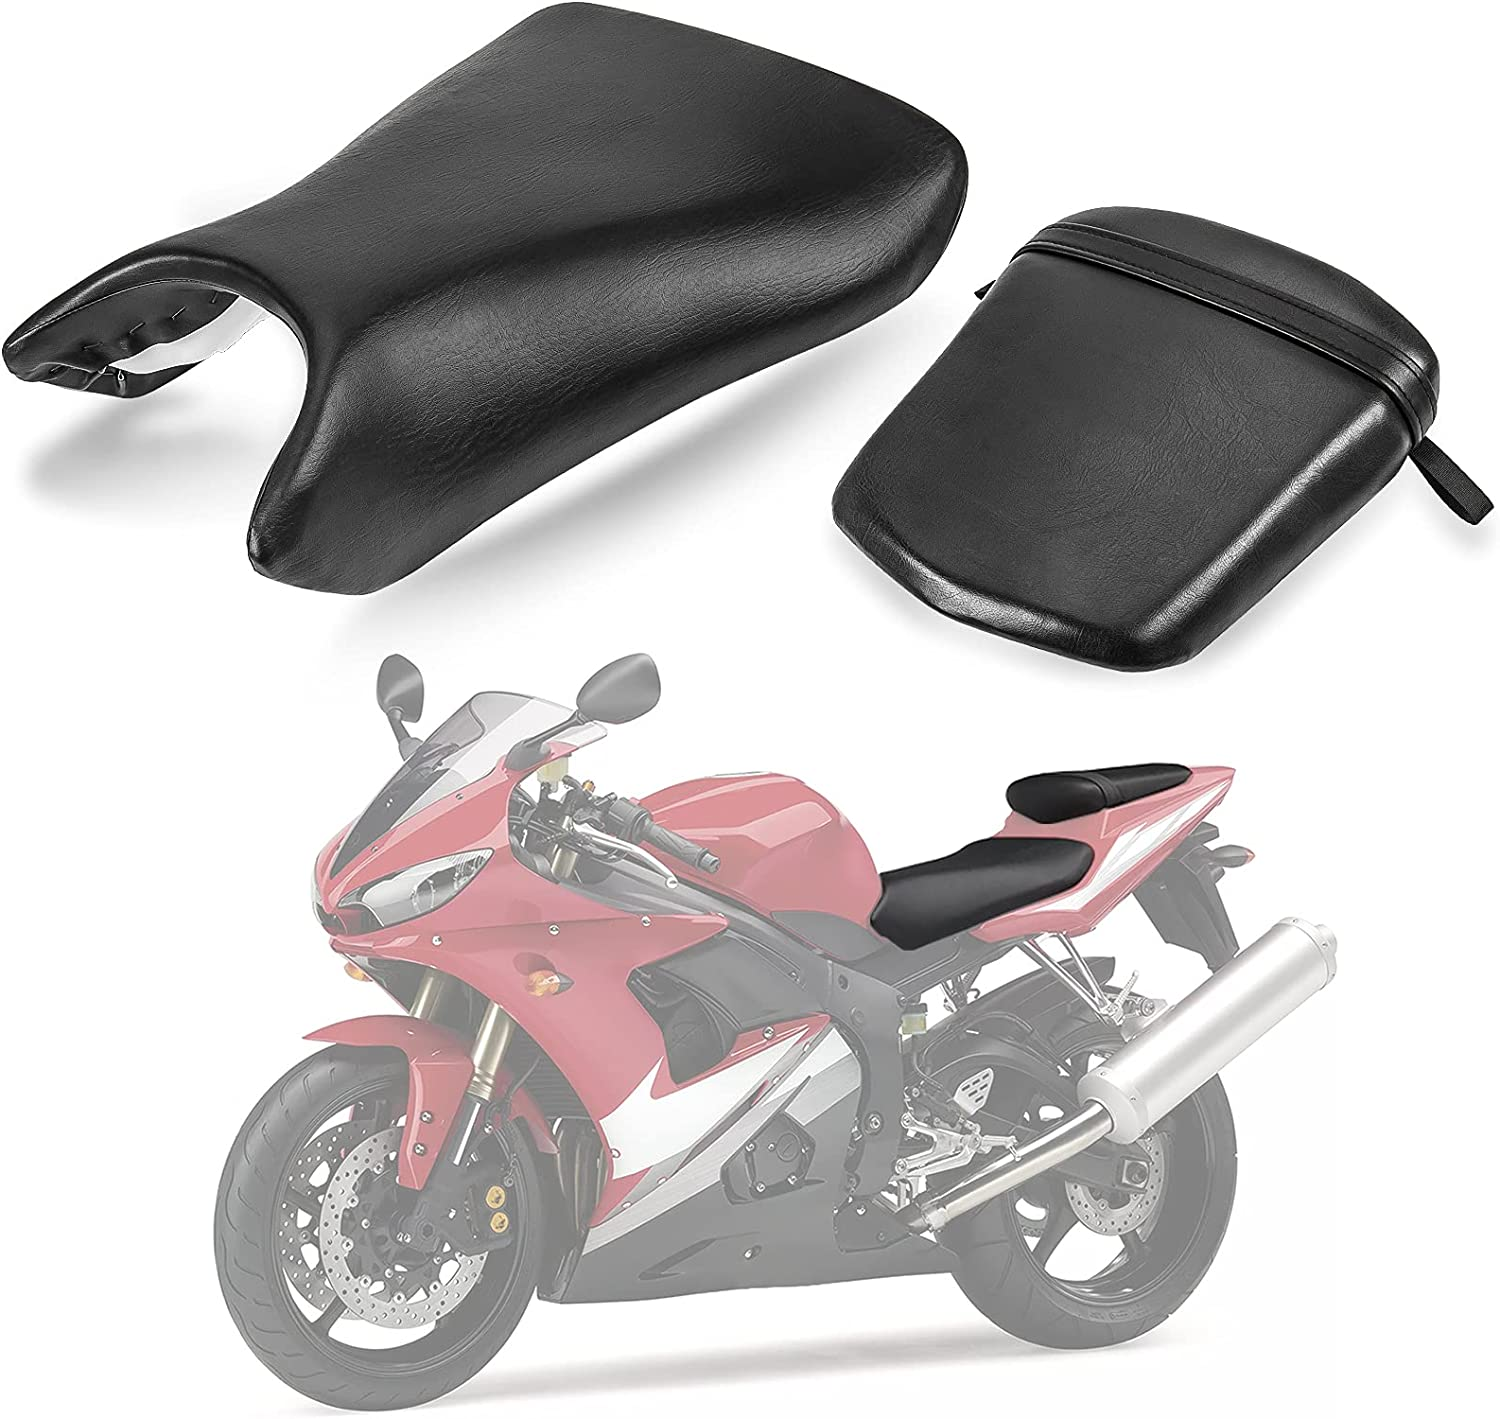 Front Seat Leather cover Rider Briver Pad Cushion For Yamaha YZF R1 2002-2003